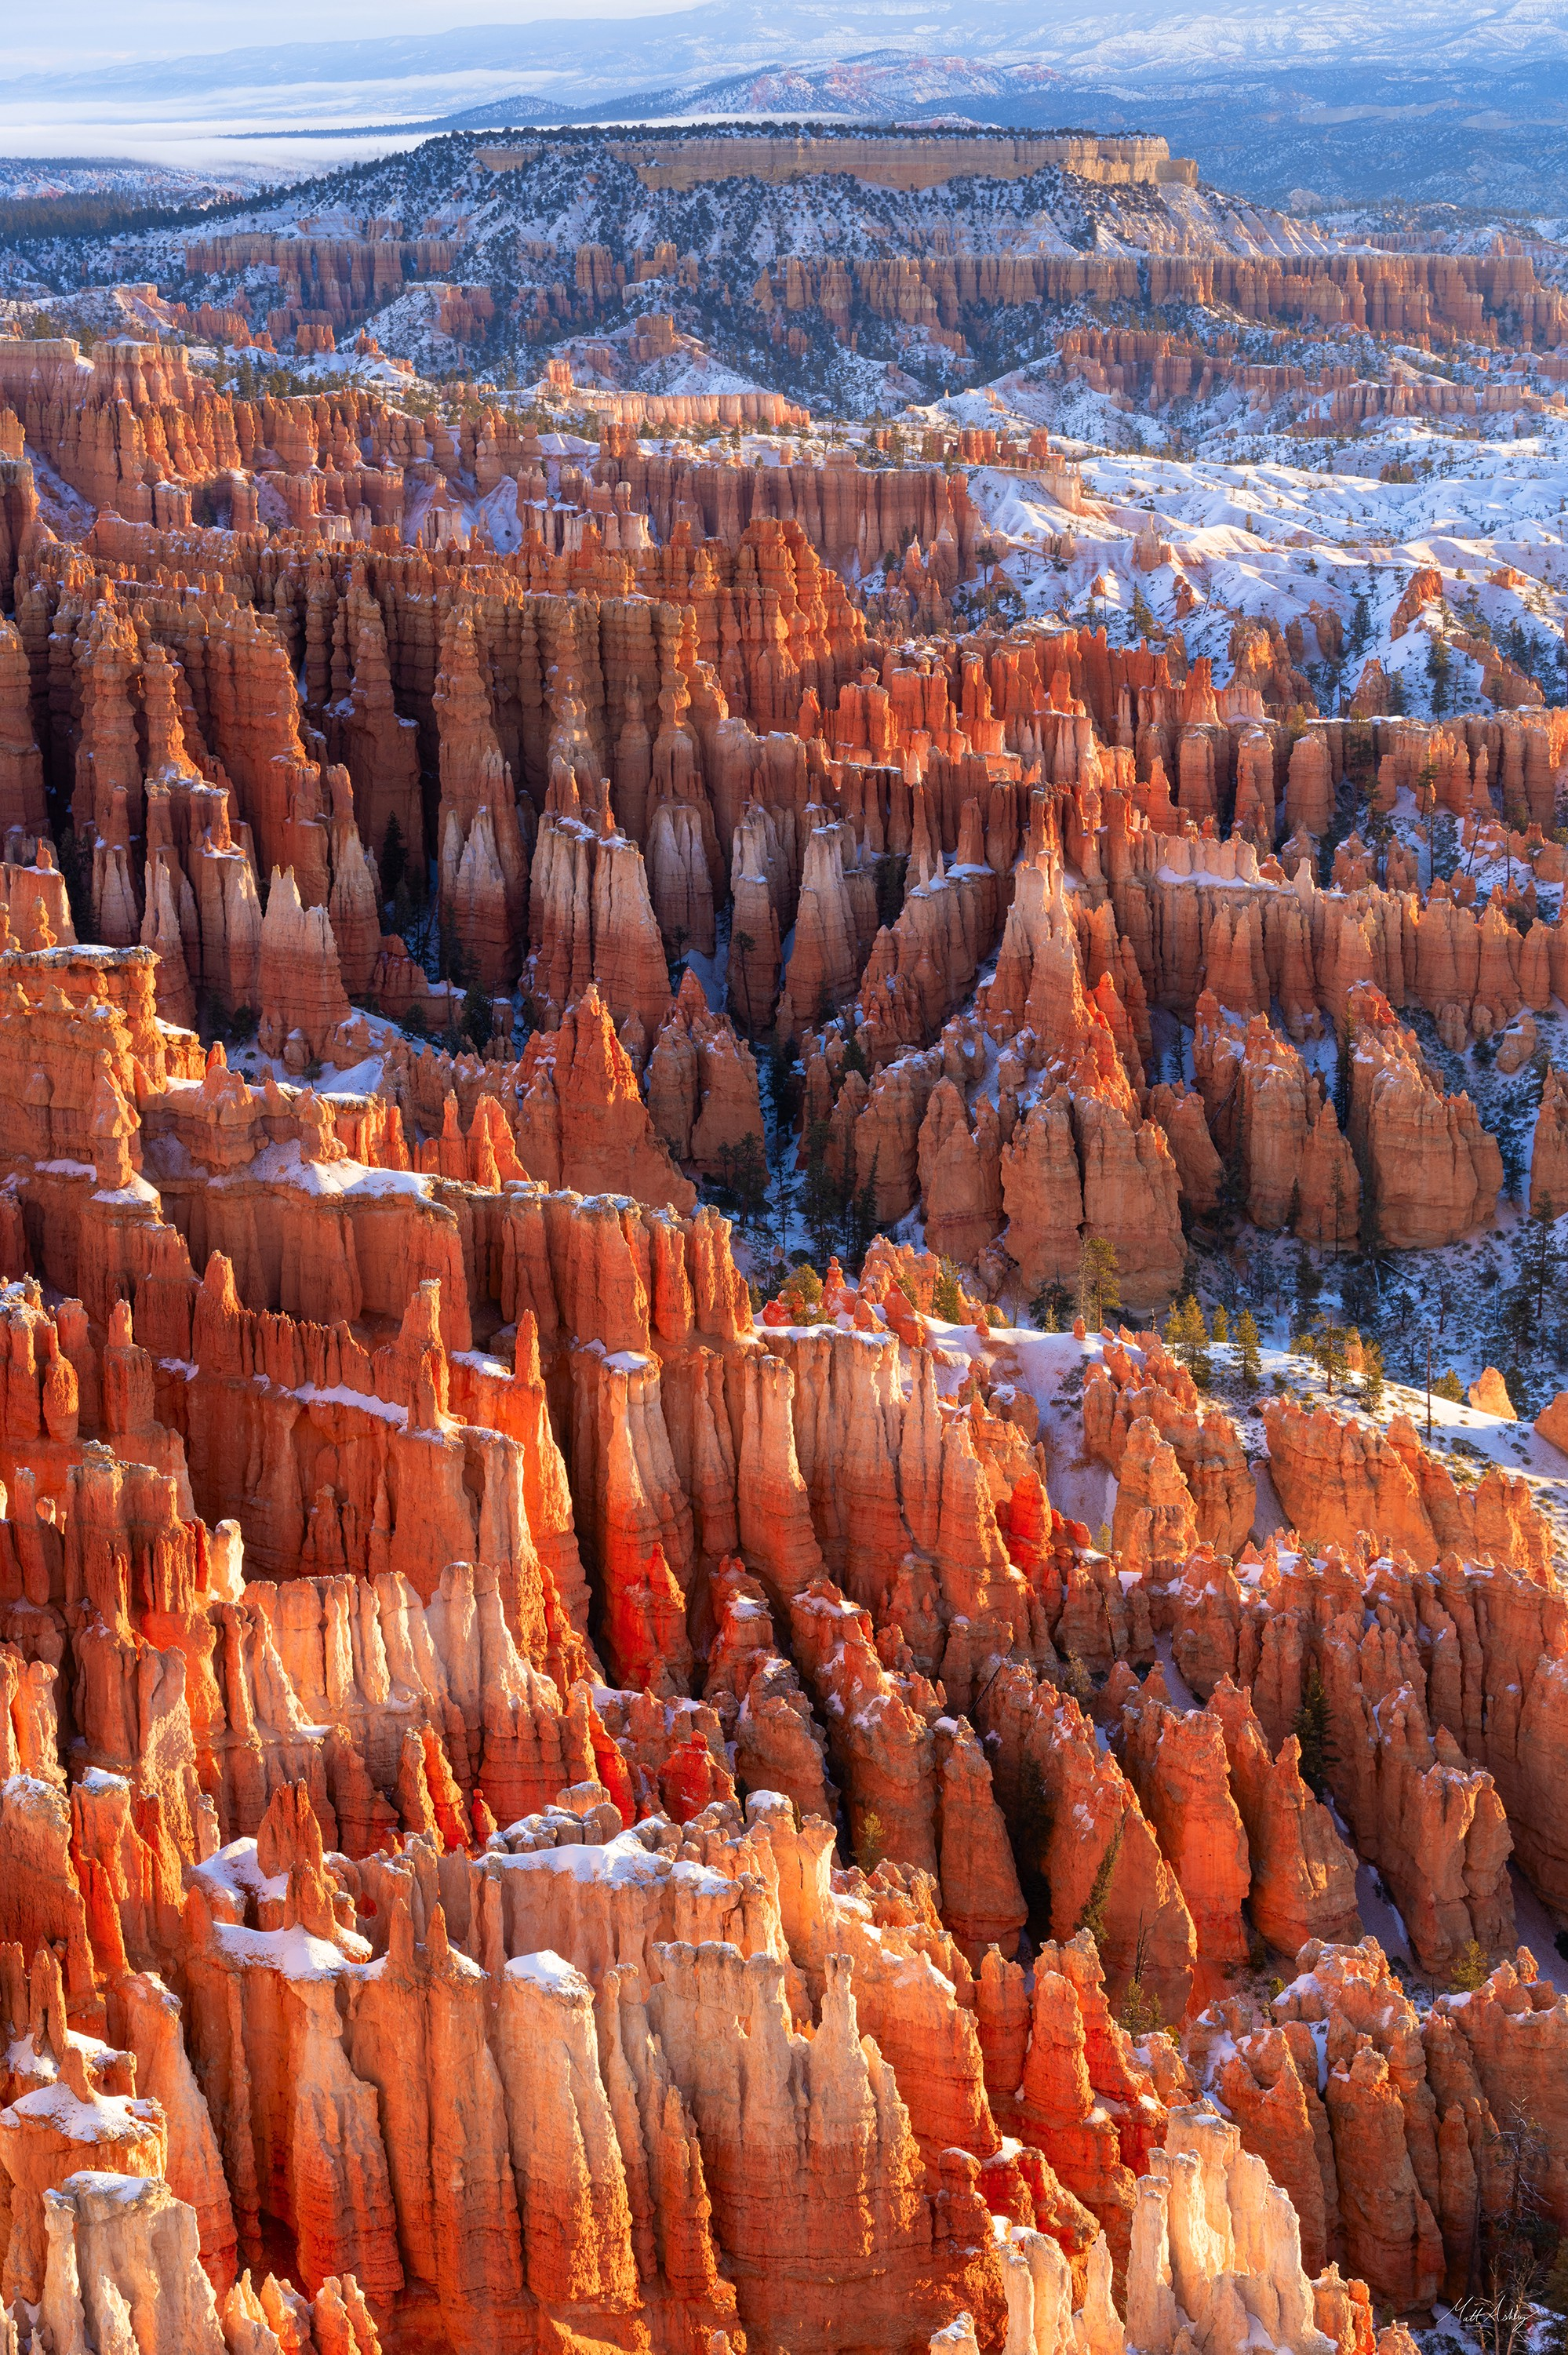 Vertical panorama of orange and red hoodoos in Bryce Canyon National Park.